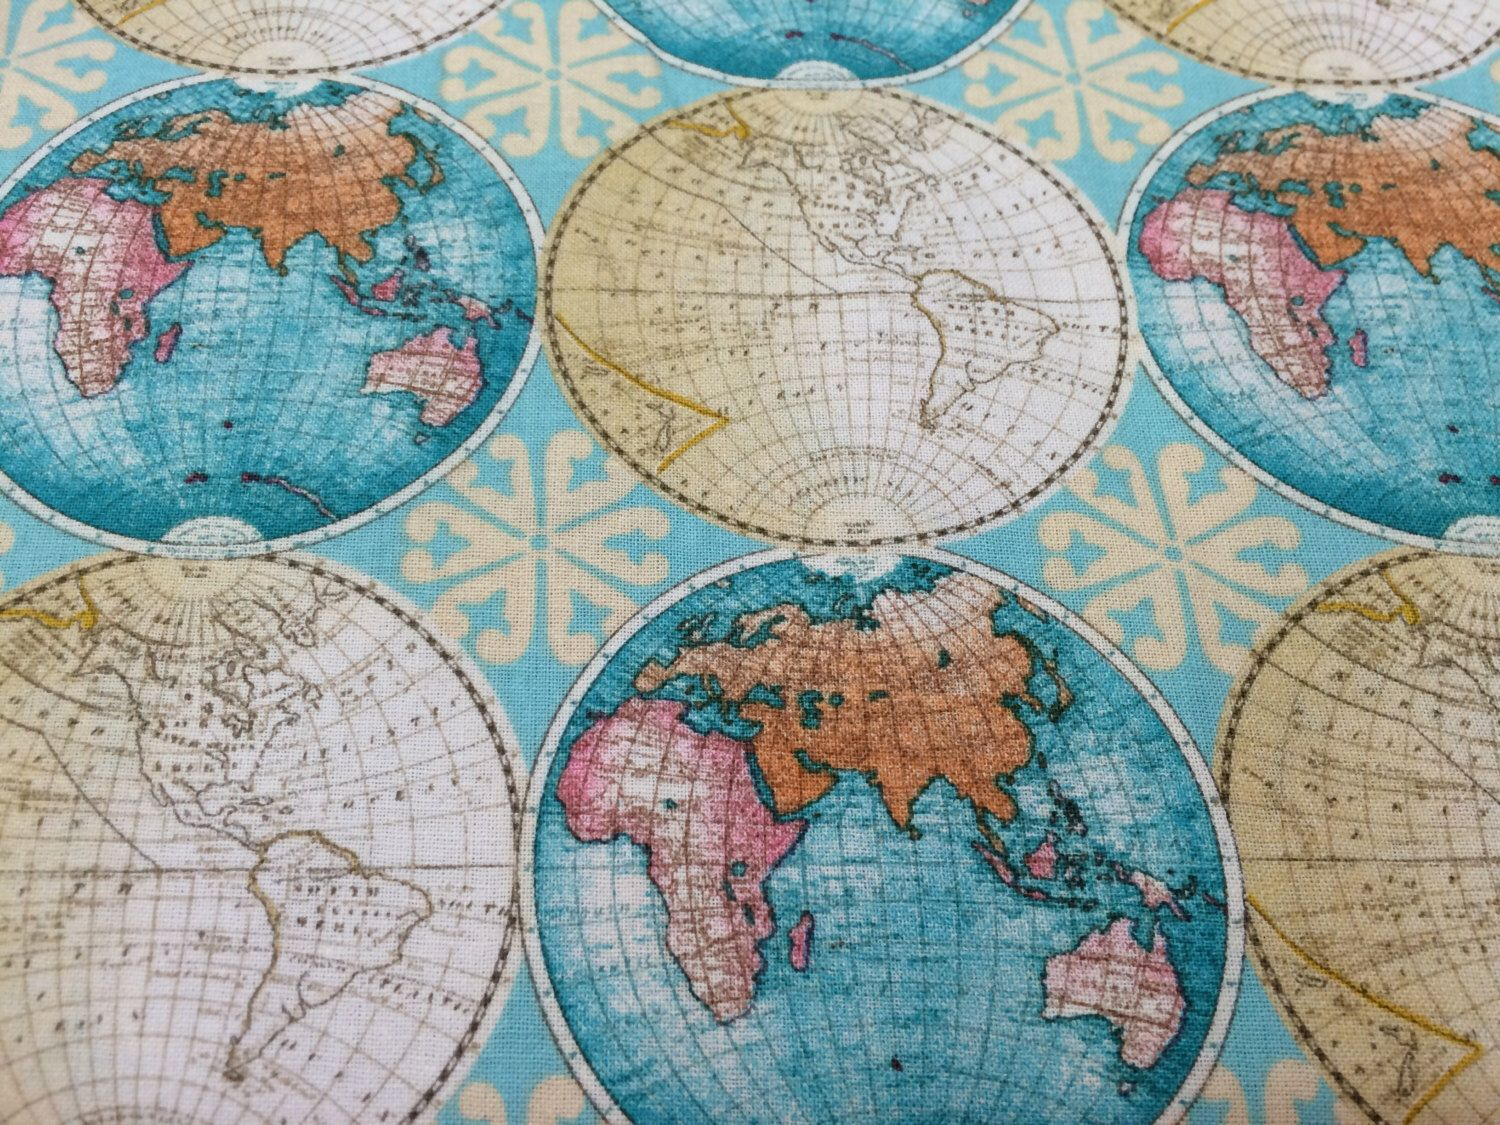 Vintage style globes world map fabric novelty fabric world map vintage style globes world map fabric novelty fabric world map globe gumiabroncs Image collections